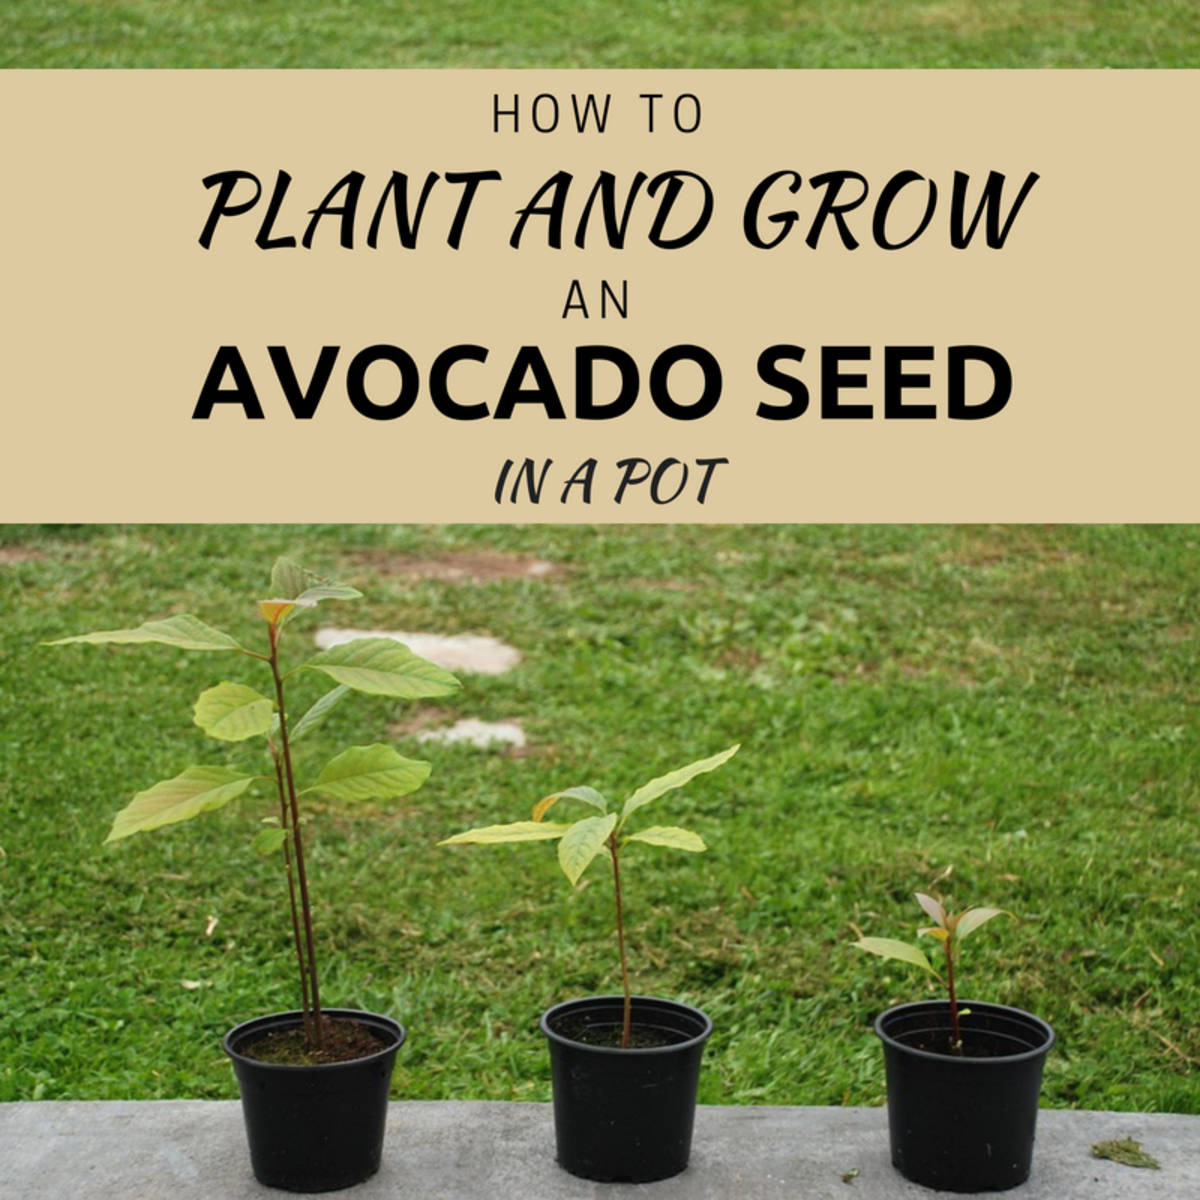 easiest way to plant and grow an avocado seed in soil dengarden. Black Bedroom Furniture Sets. Home Design Ideas